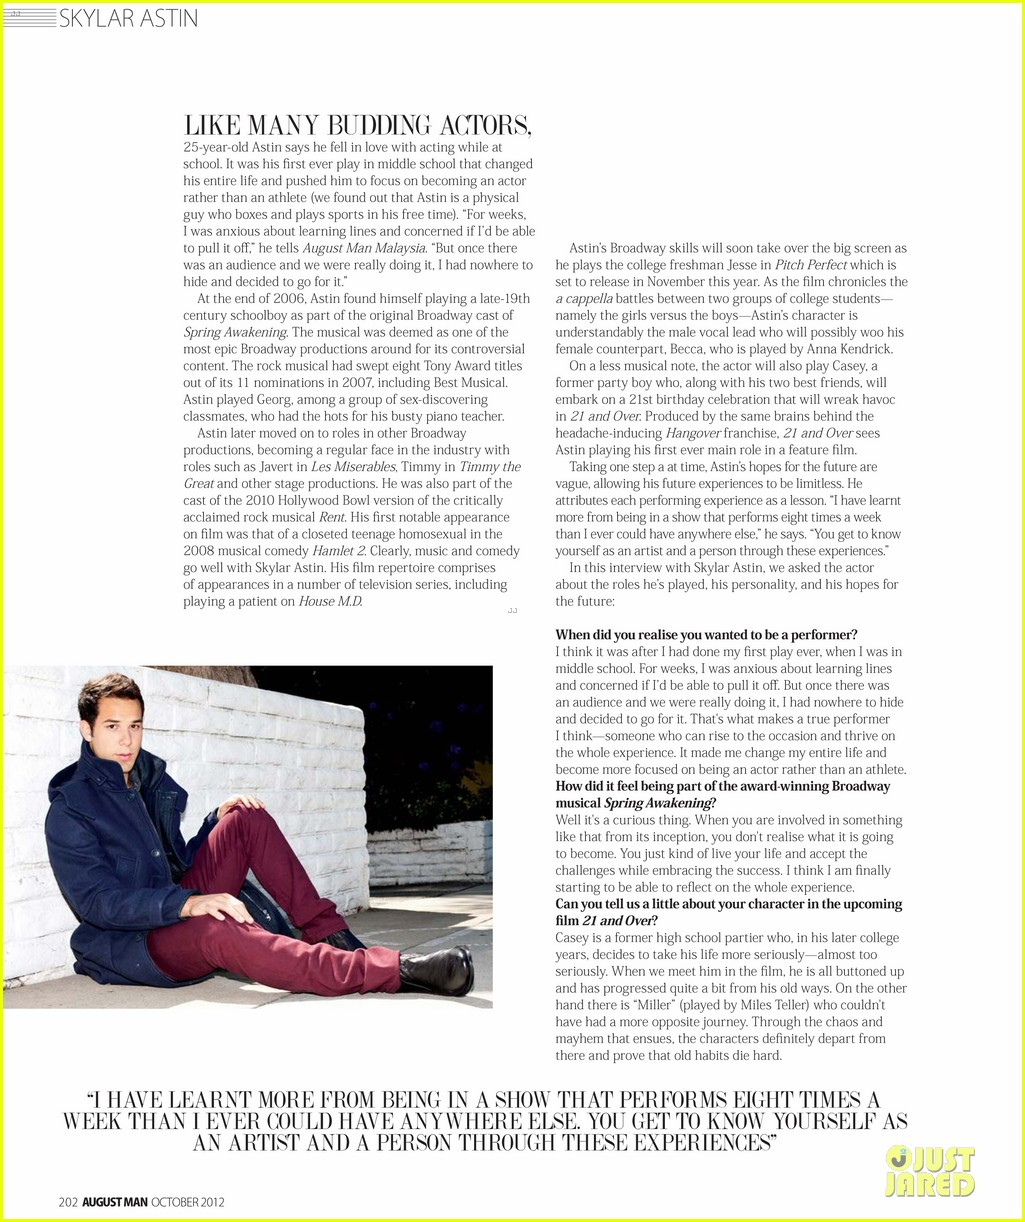 skylar astin august man feature  102737724